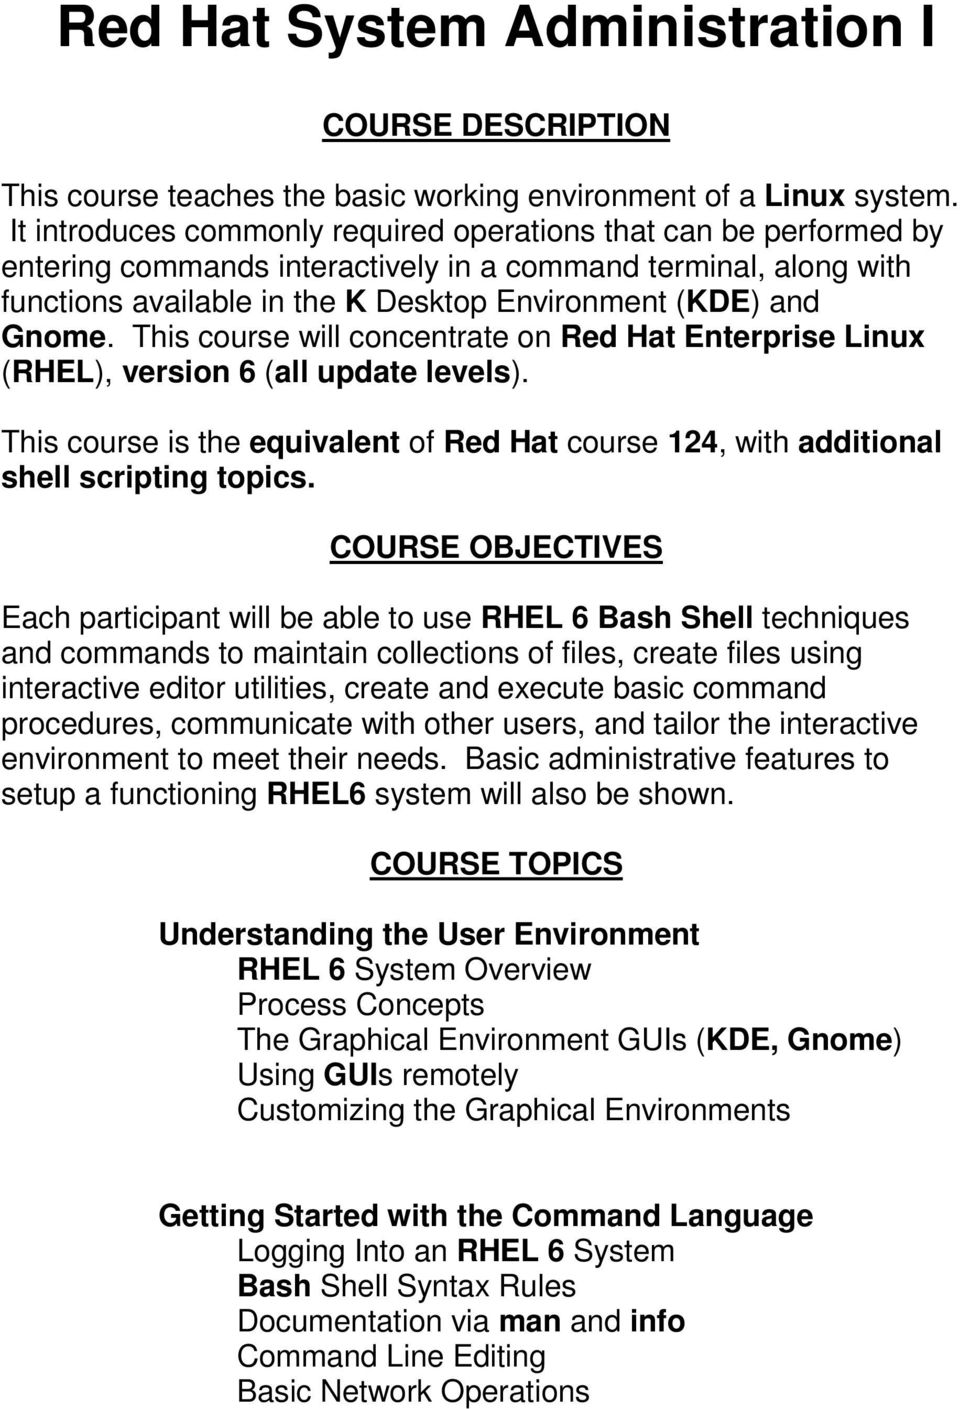 This course will concentrate on Red Hat Enterprise Linux (RHEL), version 6 (all update levels). This course is the equivalent of Red Hat course 124, with additional shell scripting topics.